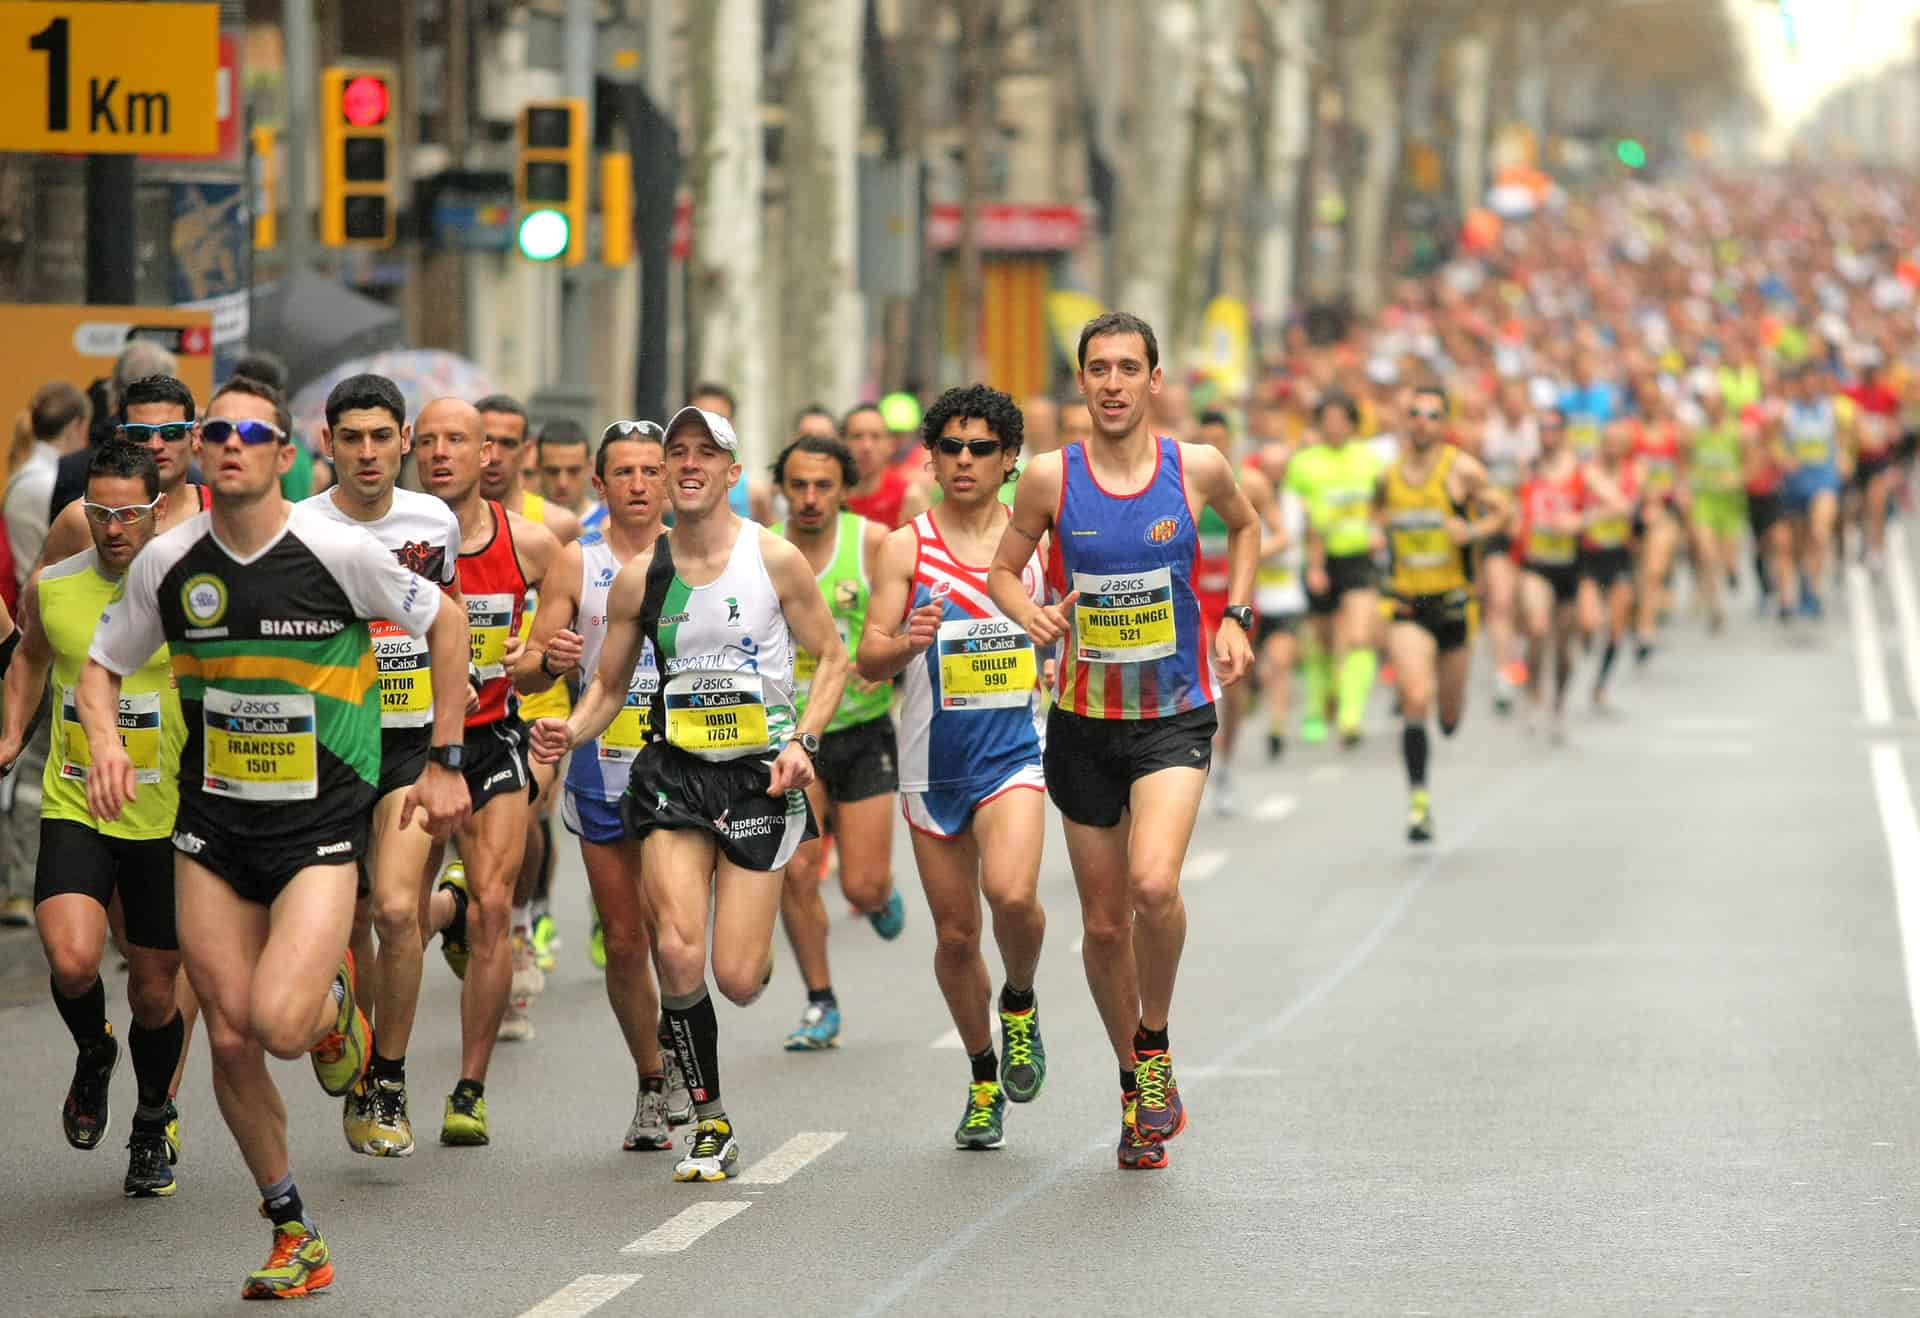 Barcelona In March - The Barcelona Marathon